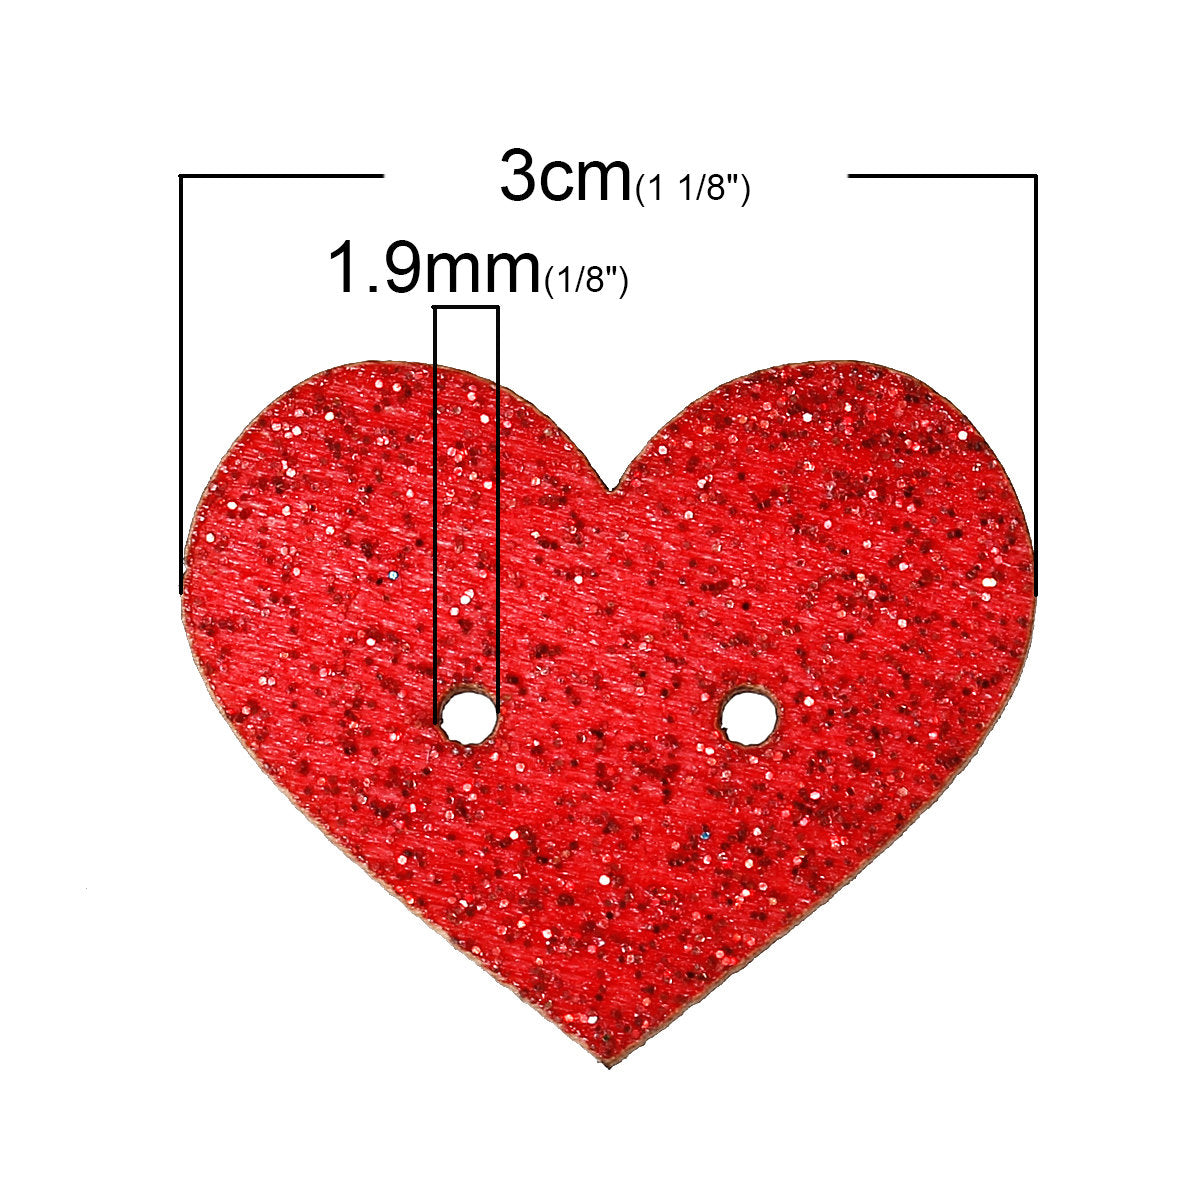 "Glitter Heart Mixed Color Wooden Buttons -  30mm x 25mm (1 1/8"" x 1"")- Valentines Day - Randomly Mixed Glitter Colors"